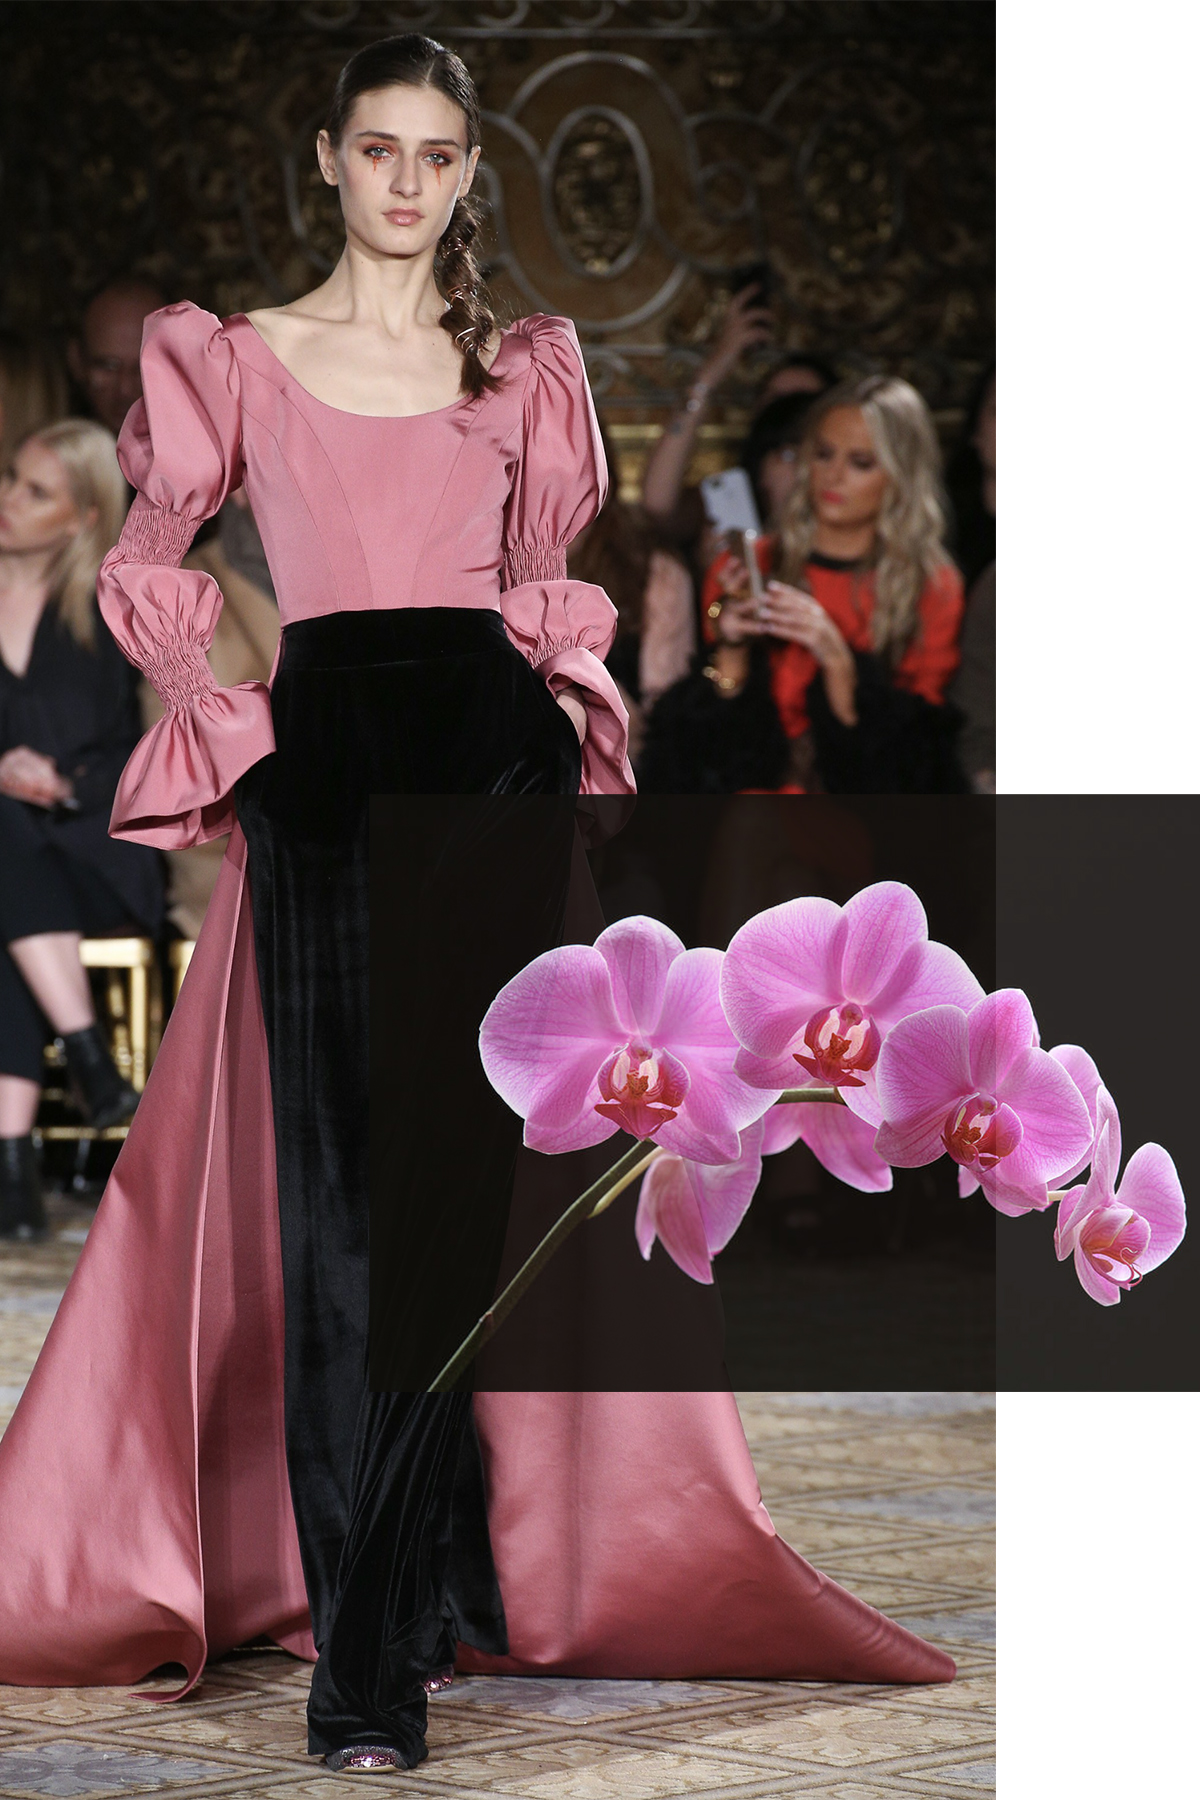 Christian Siriano paired with Orchid